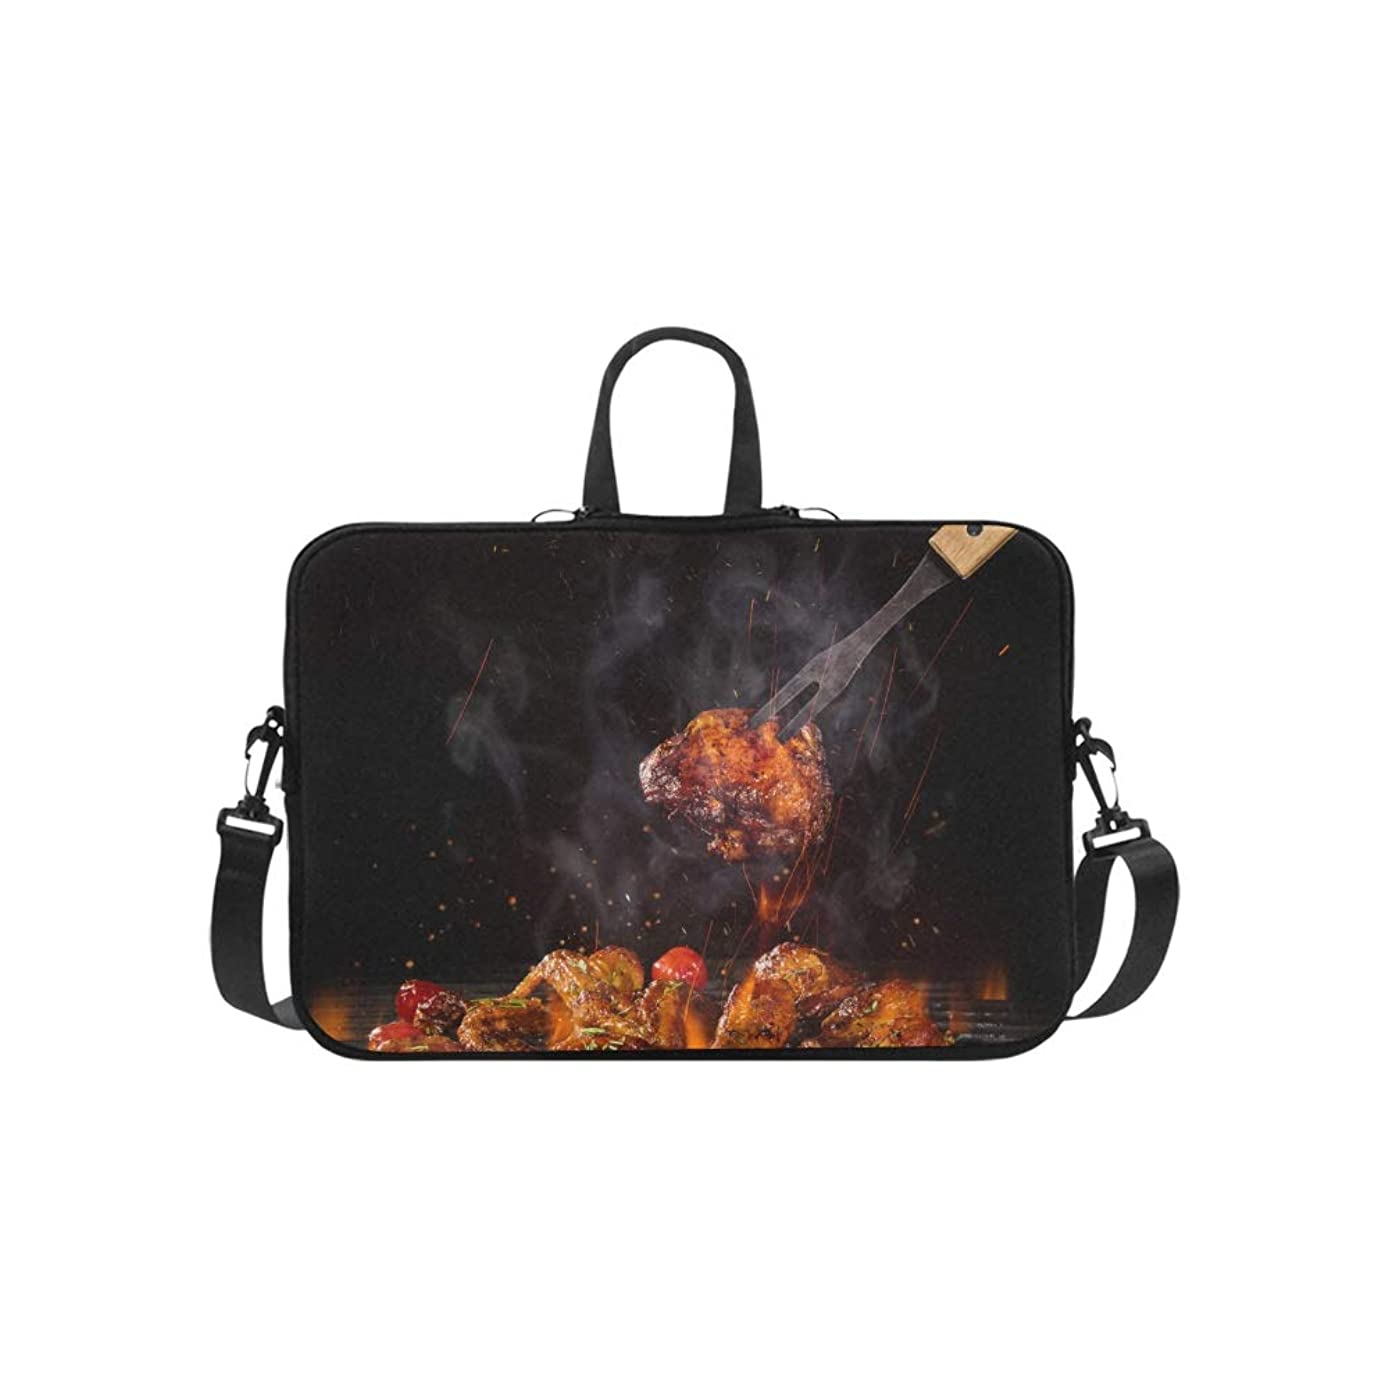 Roast Chicken Wings and Spices Pattern Briefcase Laptop Bag Messenger Shoulder Work Bag Crossbody Handbag for Business Travelling